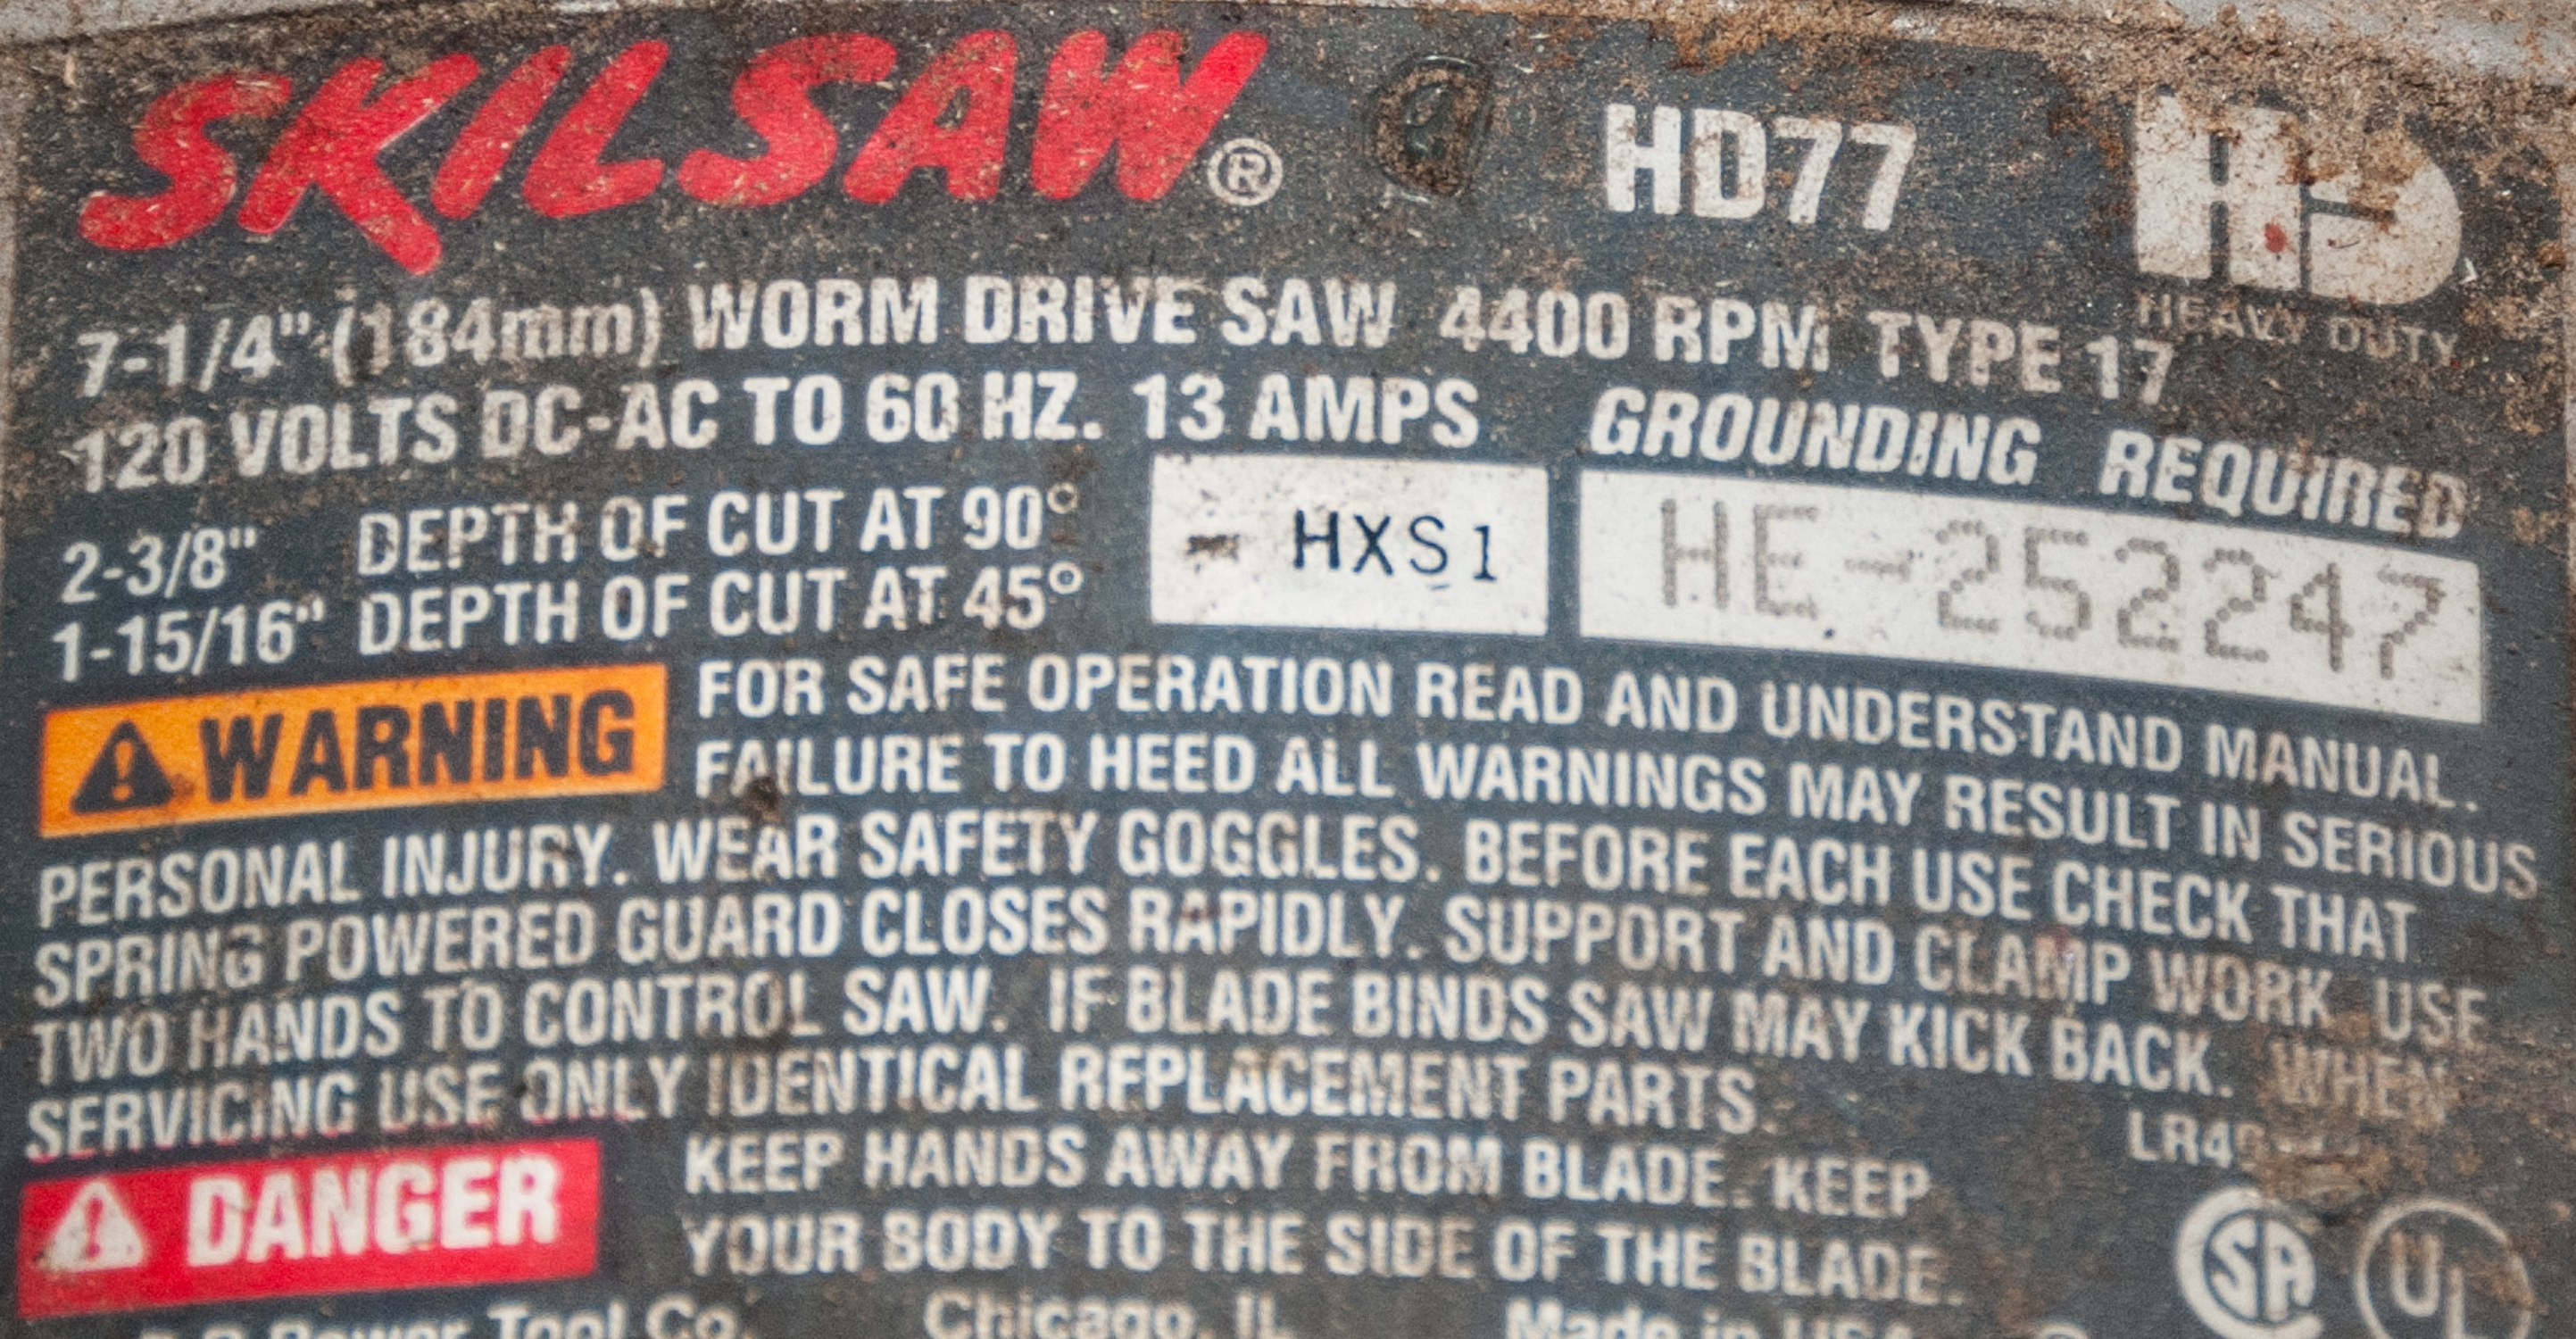 Skillsaw HD 77 Worm Drive Saw HXS1, HE-252247 - Image 2 of 3